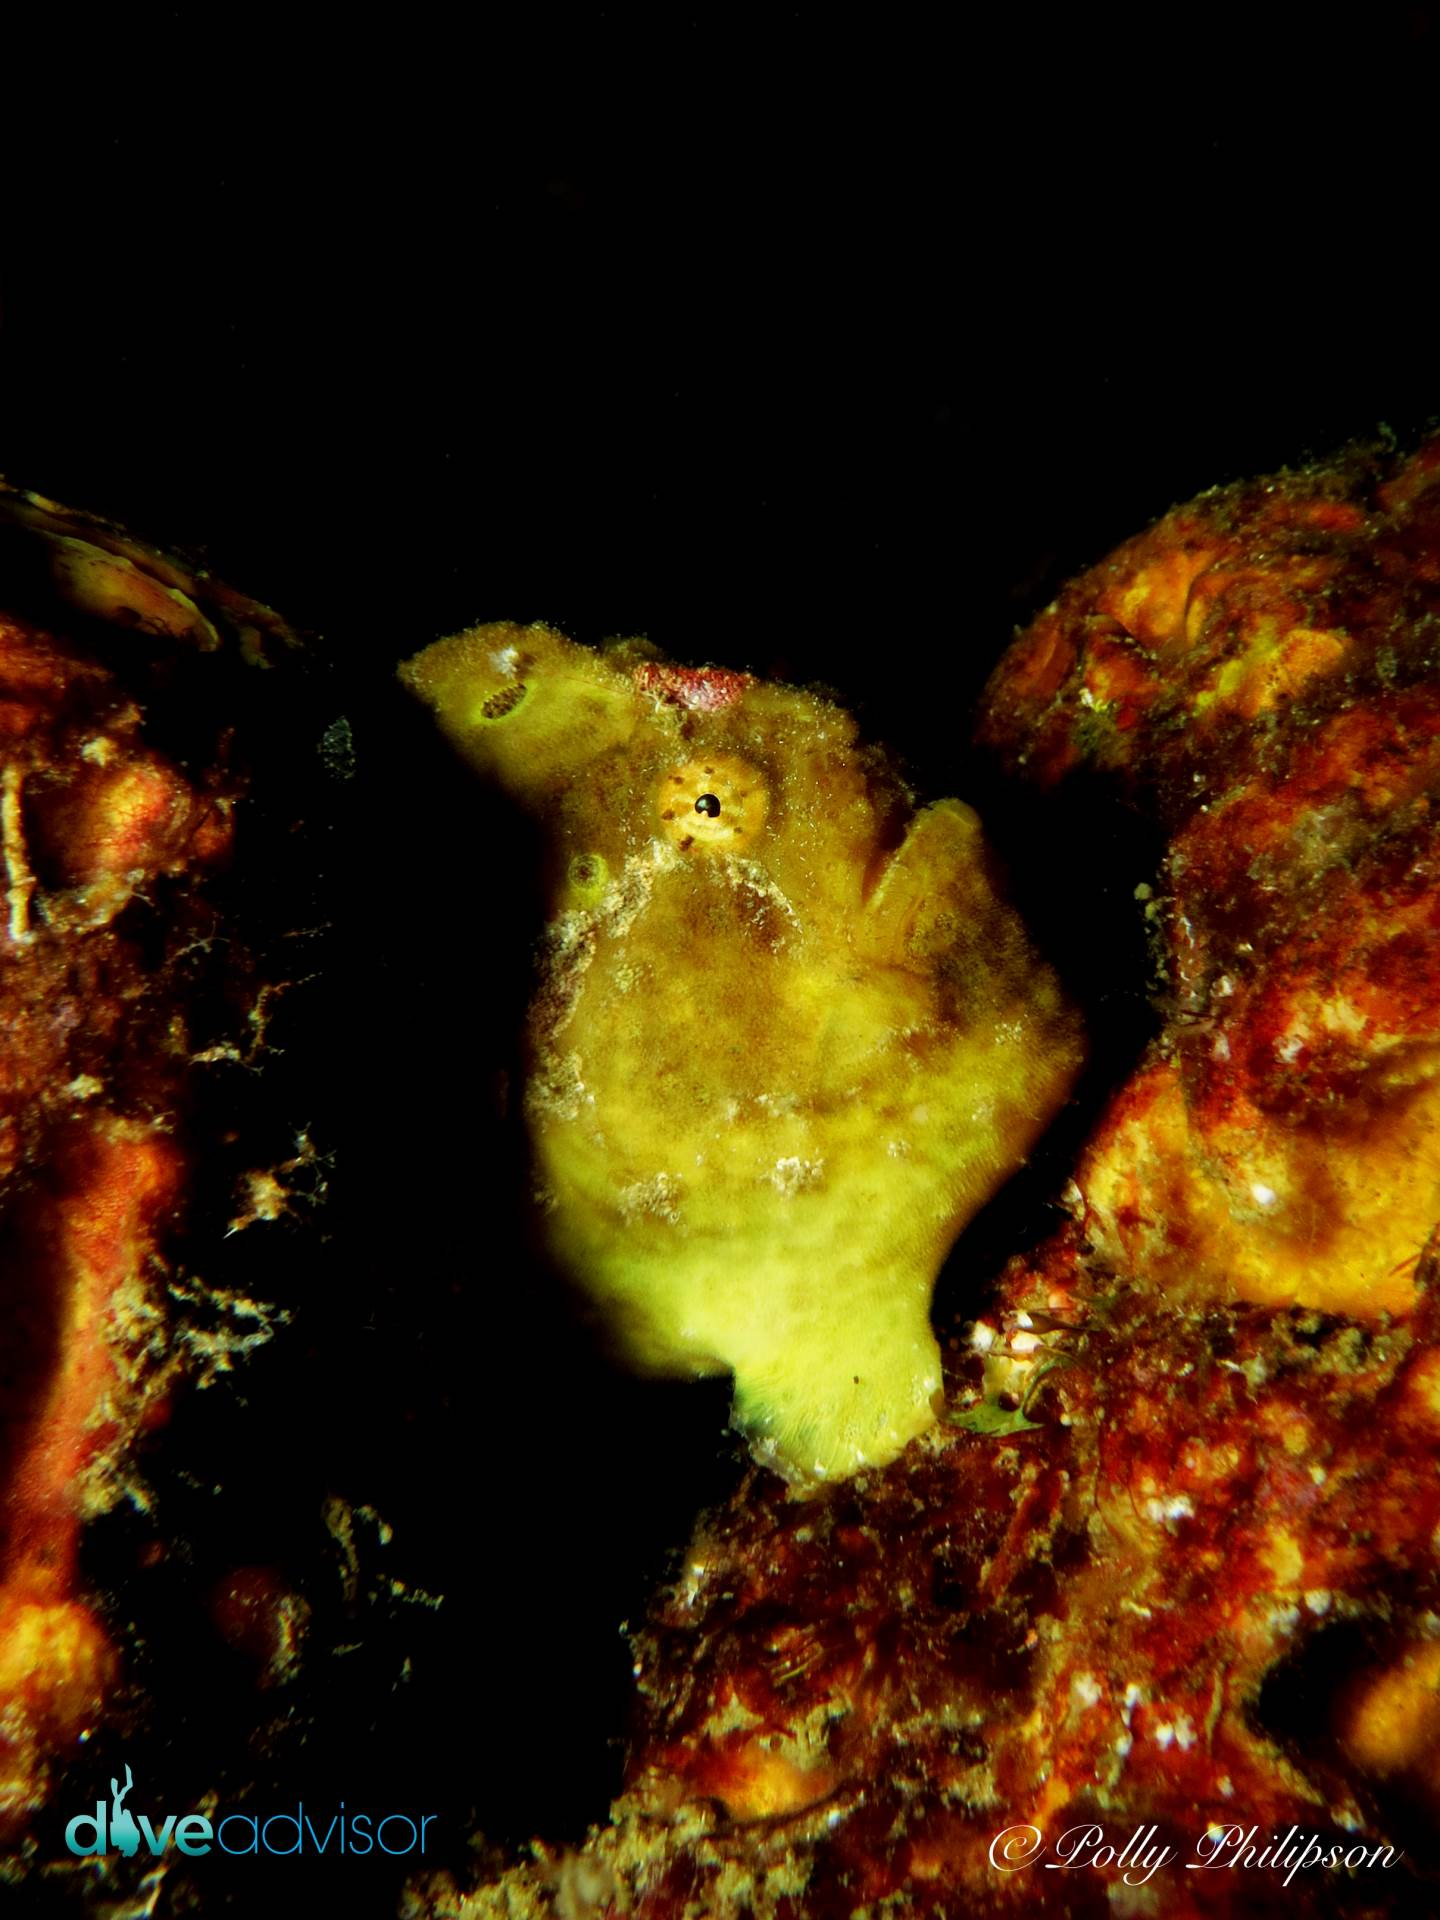 Longlure frogfish use the yellow sponges growing on wrecks as camouflage. This tiny frogfish was hard to spot on the massive shipwreck of the Bianca C.